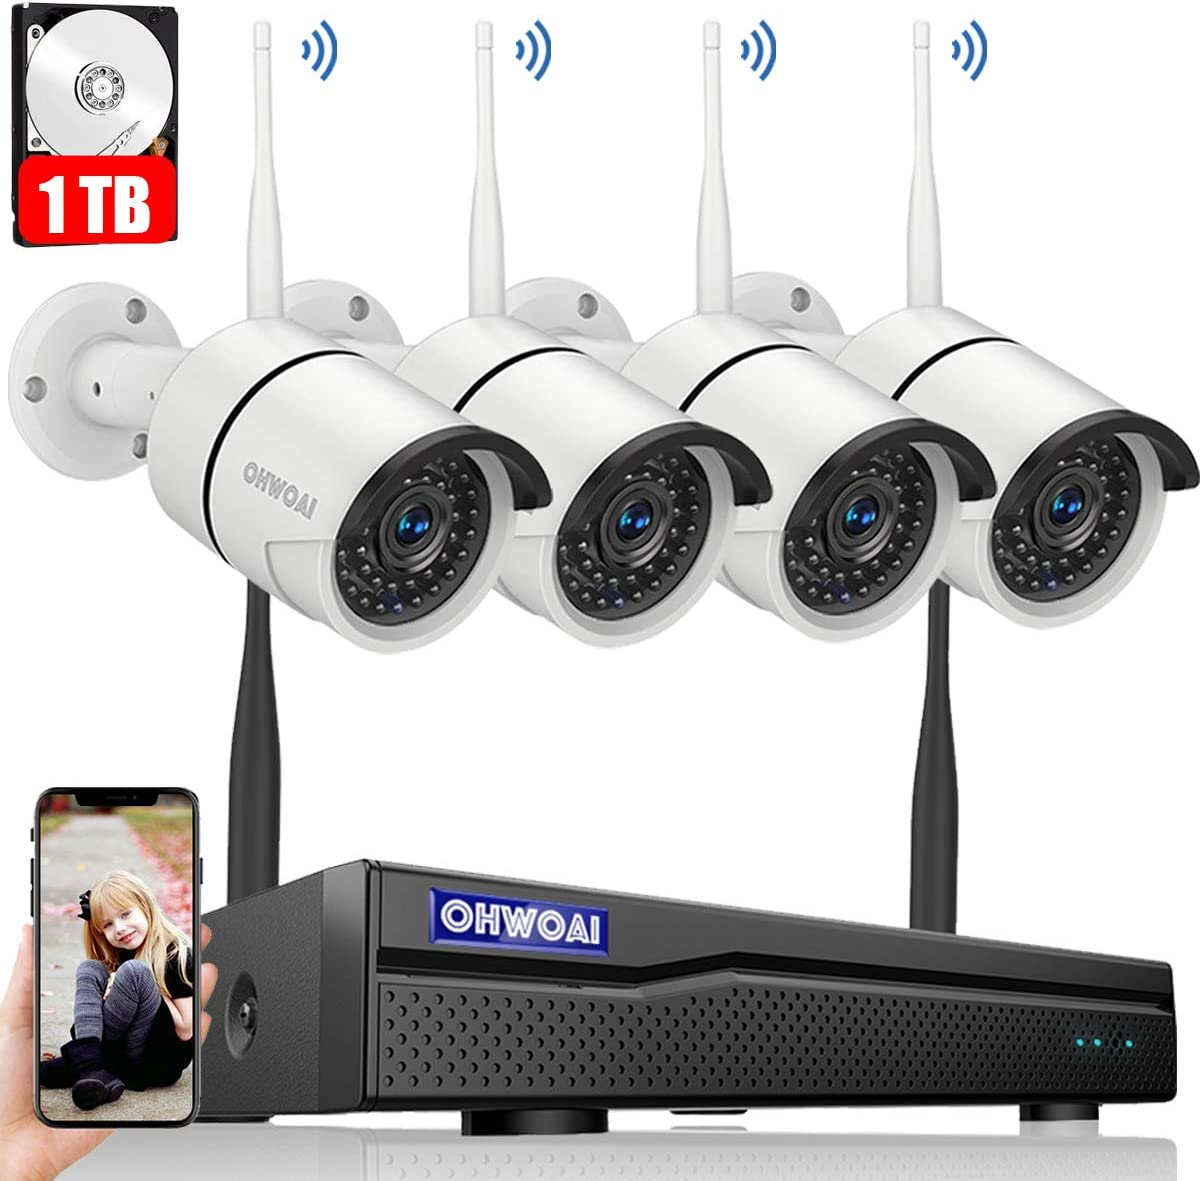 8CH Expandable Security Camera System Wireless Outdoor, 8 Channel 1080P NVR With 1TB Hard Drive , 4Pcs 960P CCTV Cameras For Home,OHWOAI Surveillance Video security System,Outdoor Wireless IP Cameras